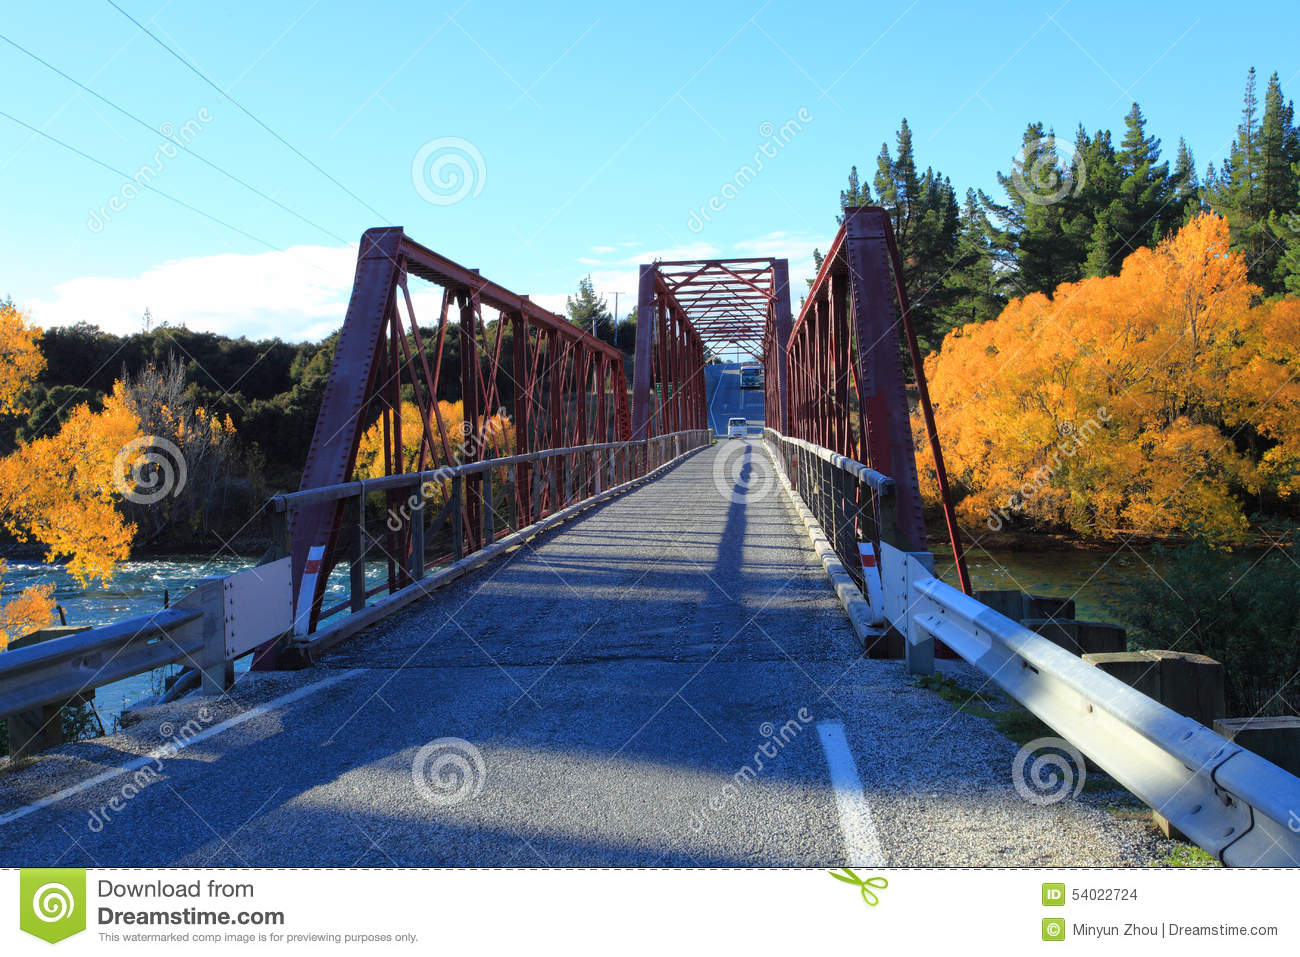 Clyde New Zealand  city pictures gallery : Clyde Bridge On The Clutha River,South Island New Zealand. Stock Photo ...